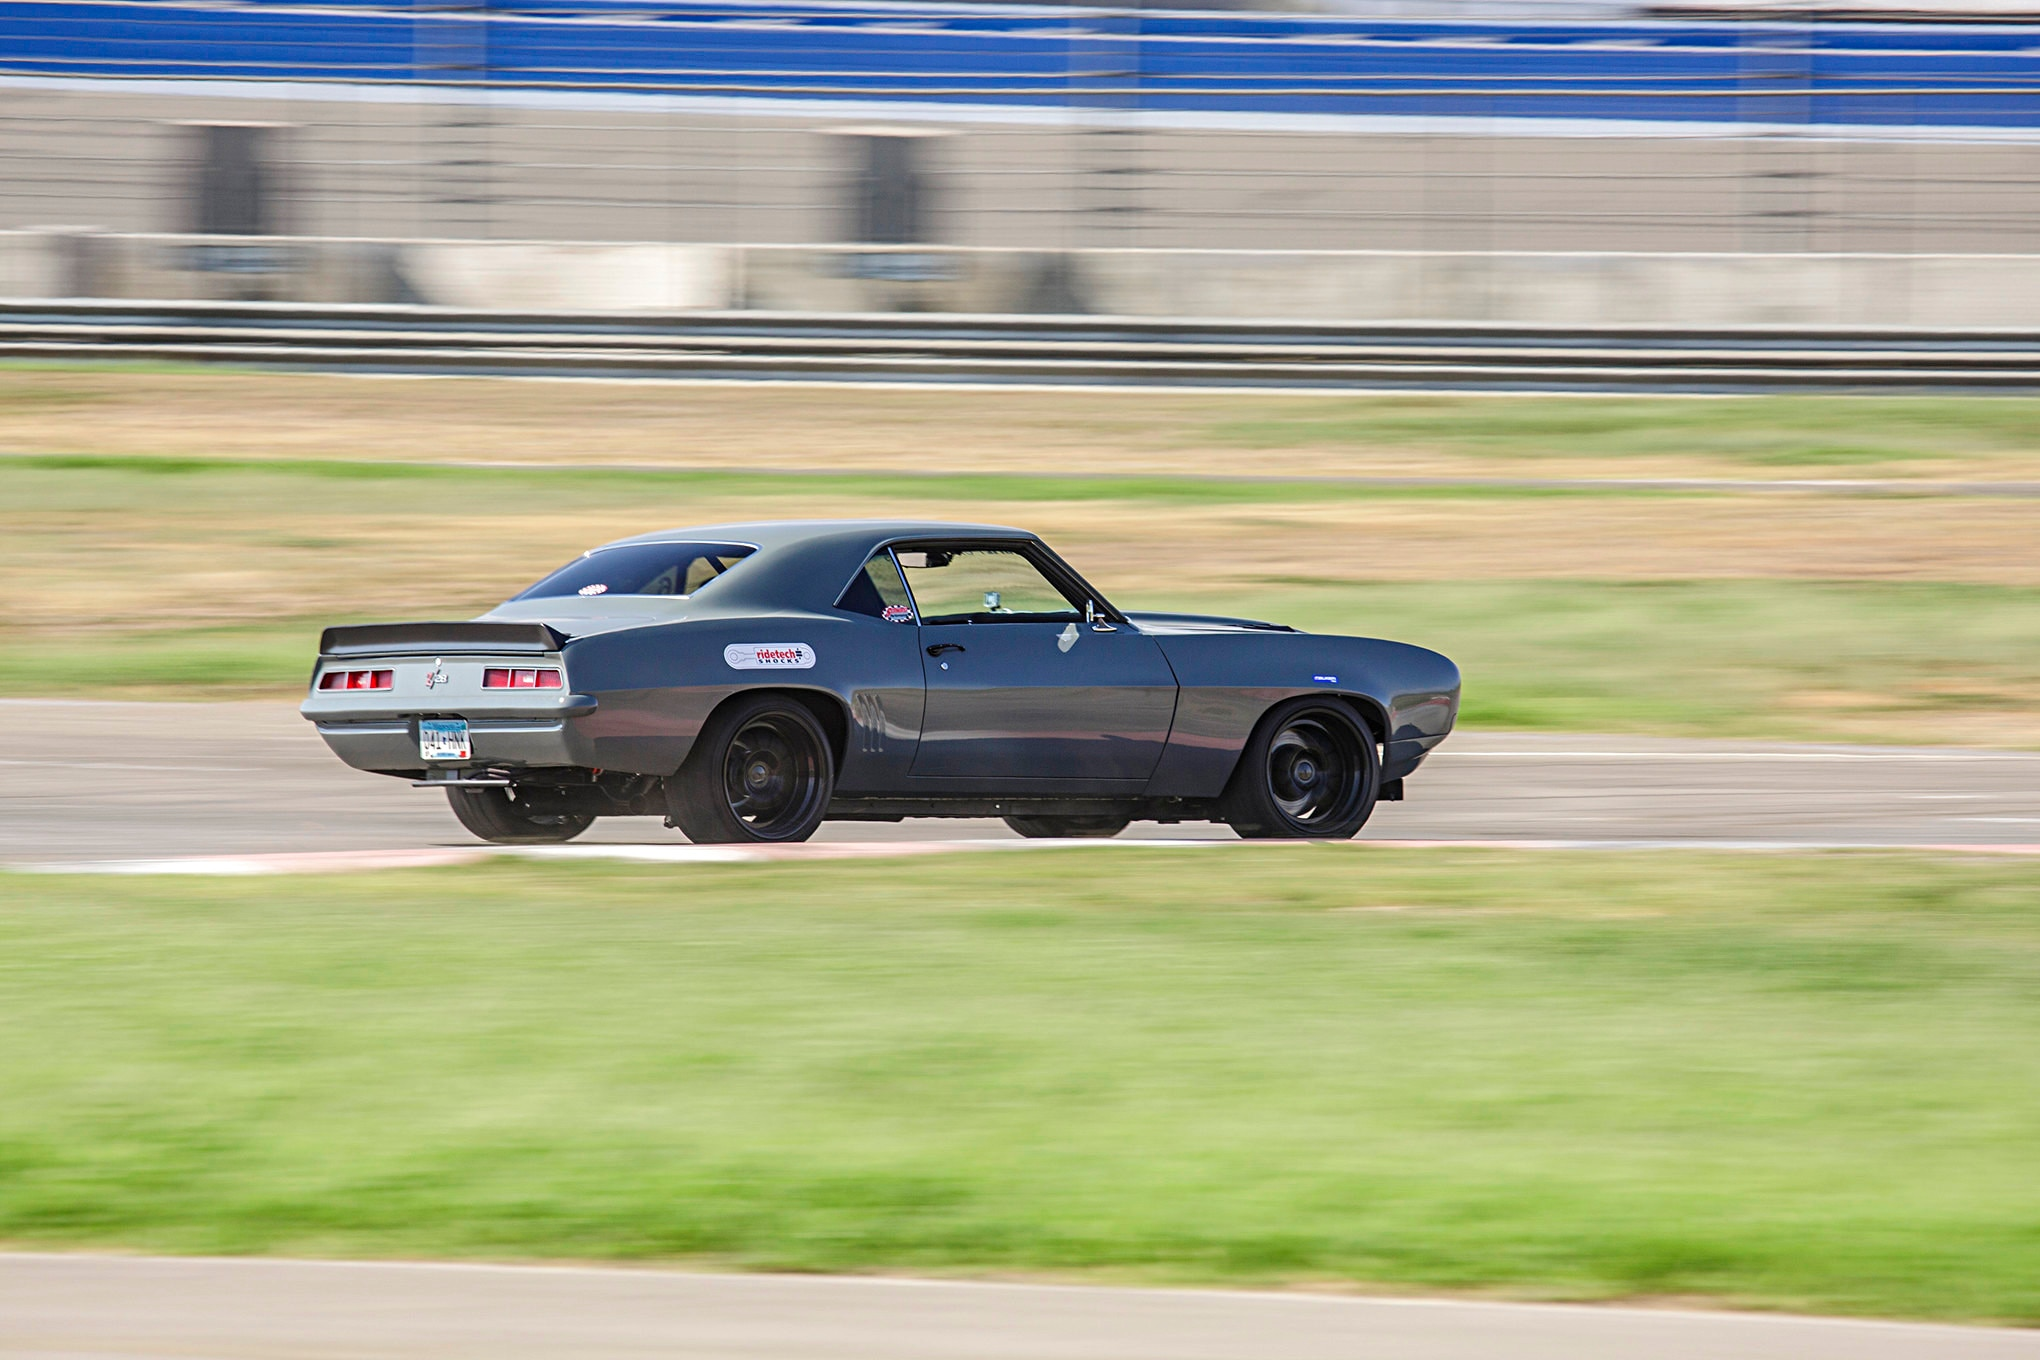 1969 Schwartz Camaro Falken Tires Super Chevy Muscle Car Challenge Rt615k 009